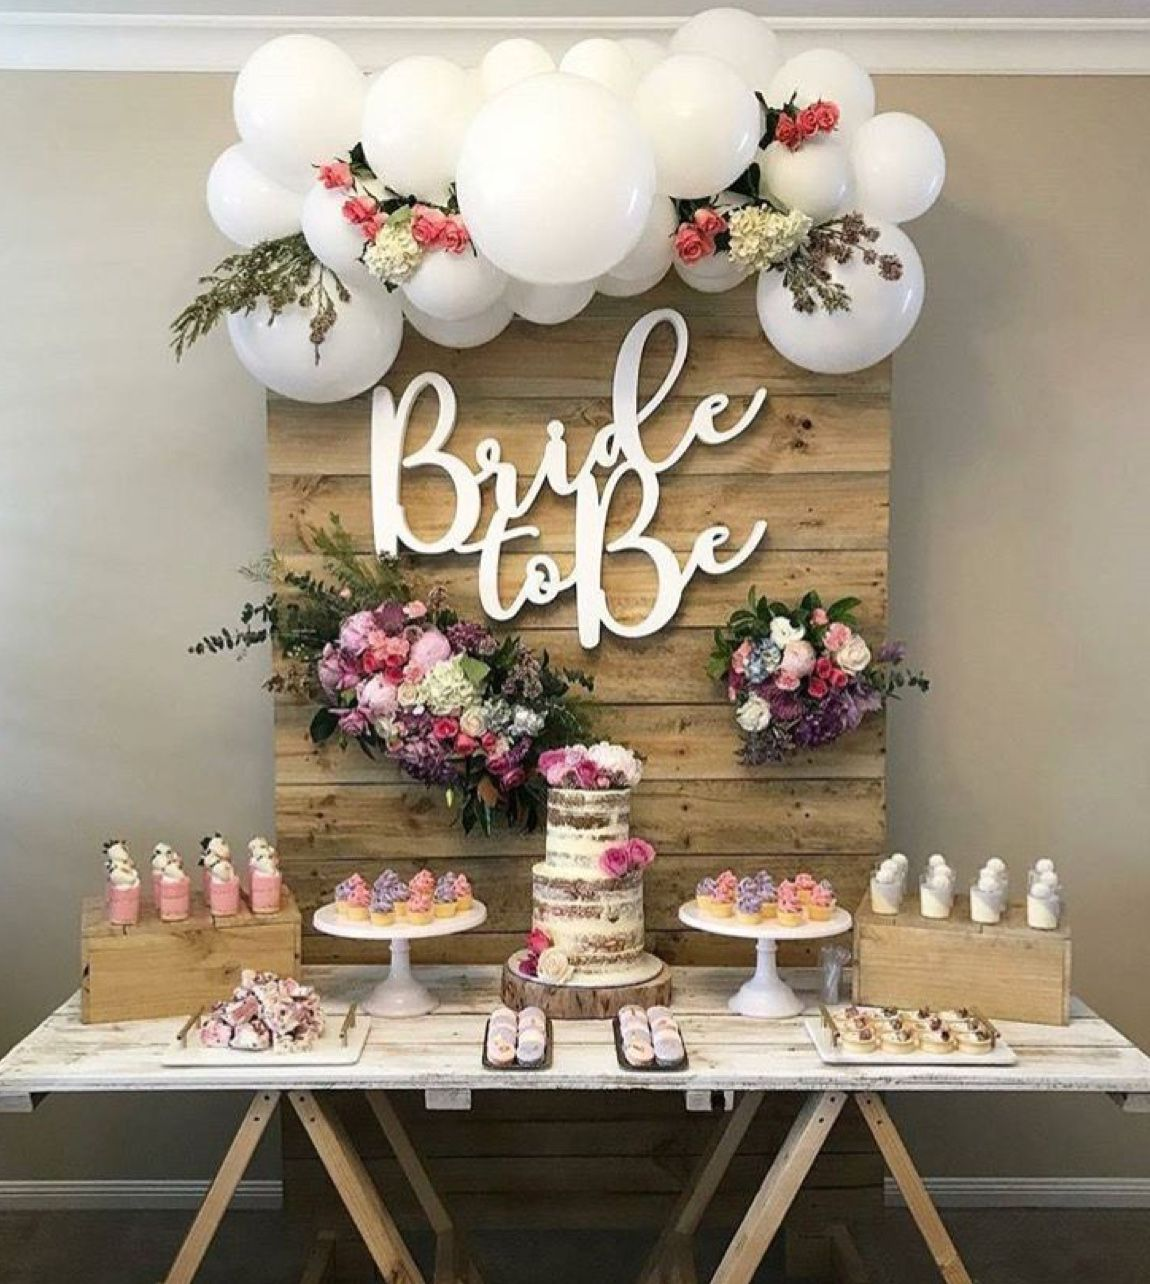 Stunning Rustic Bridal Shower Dessert Table Set Up